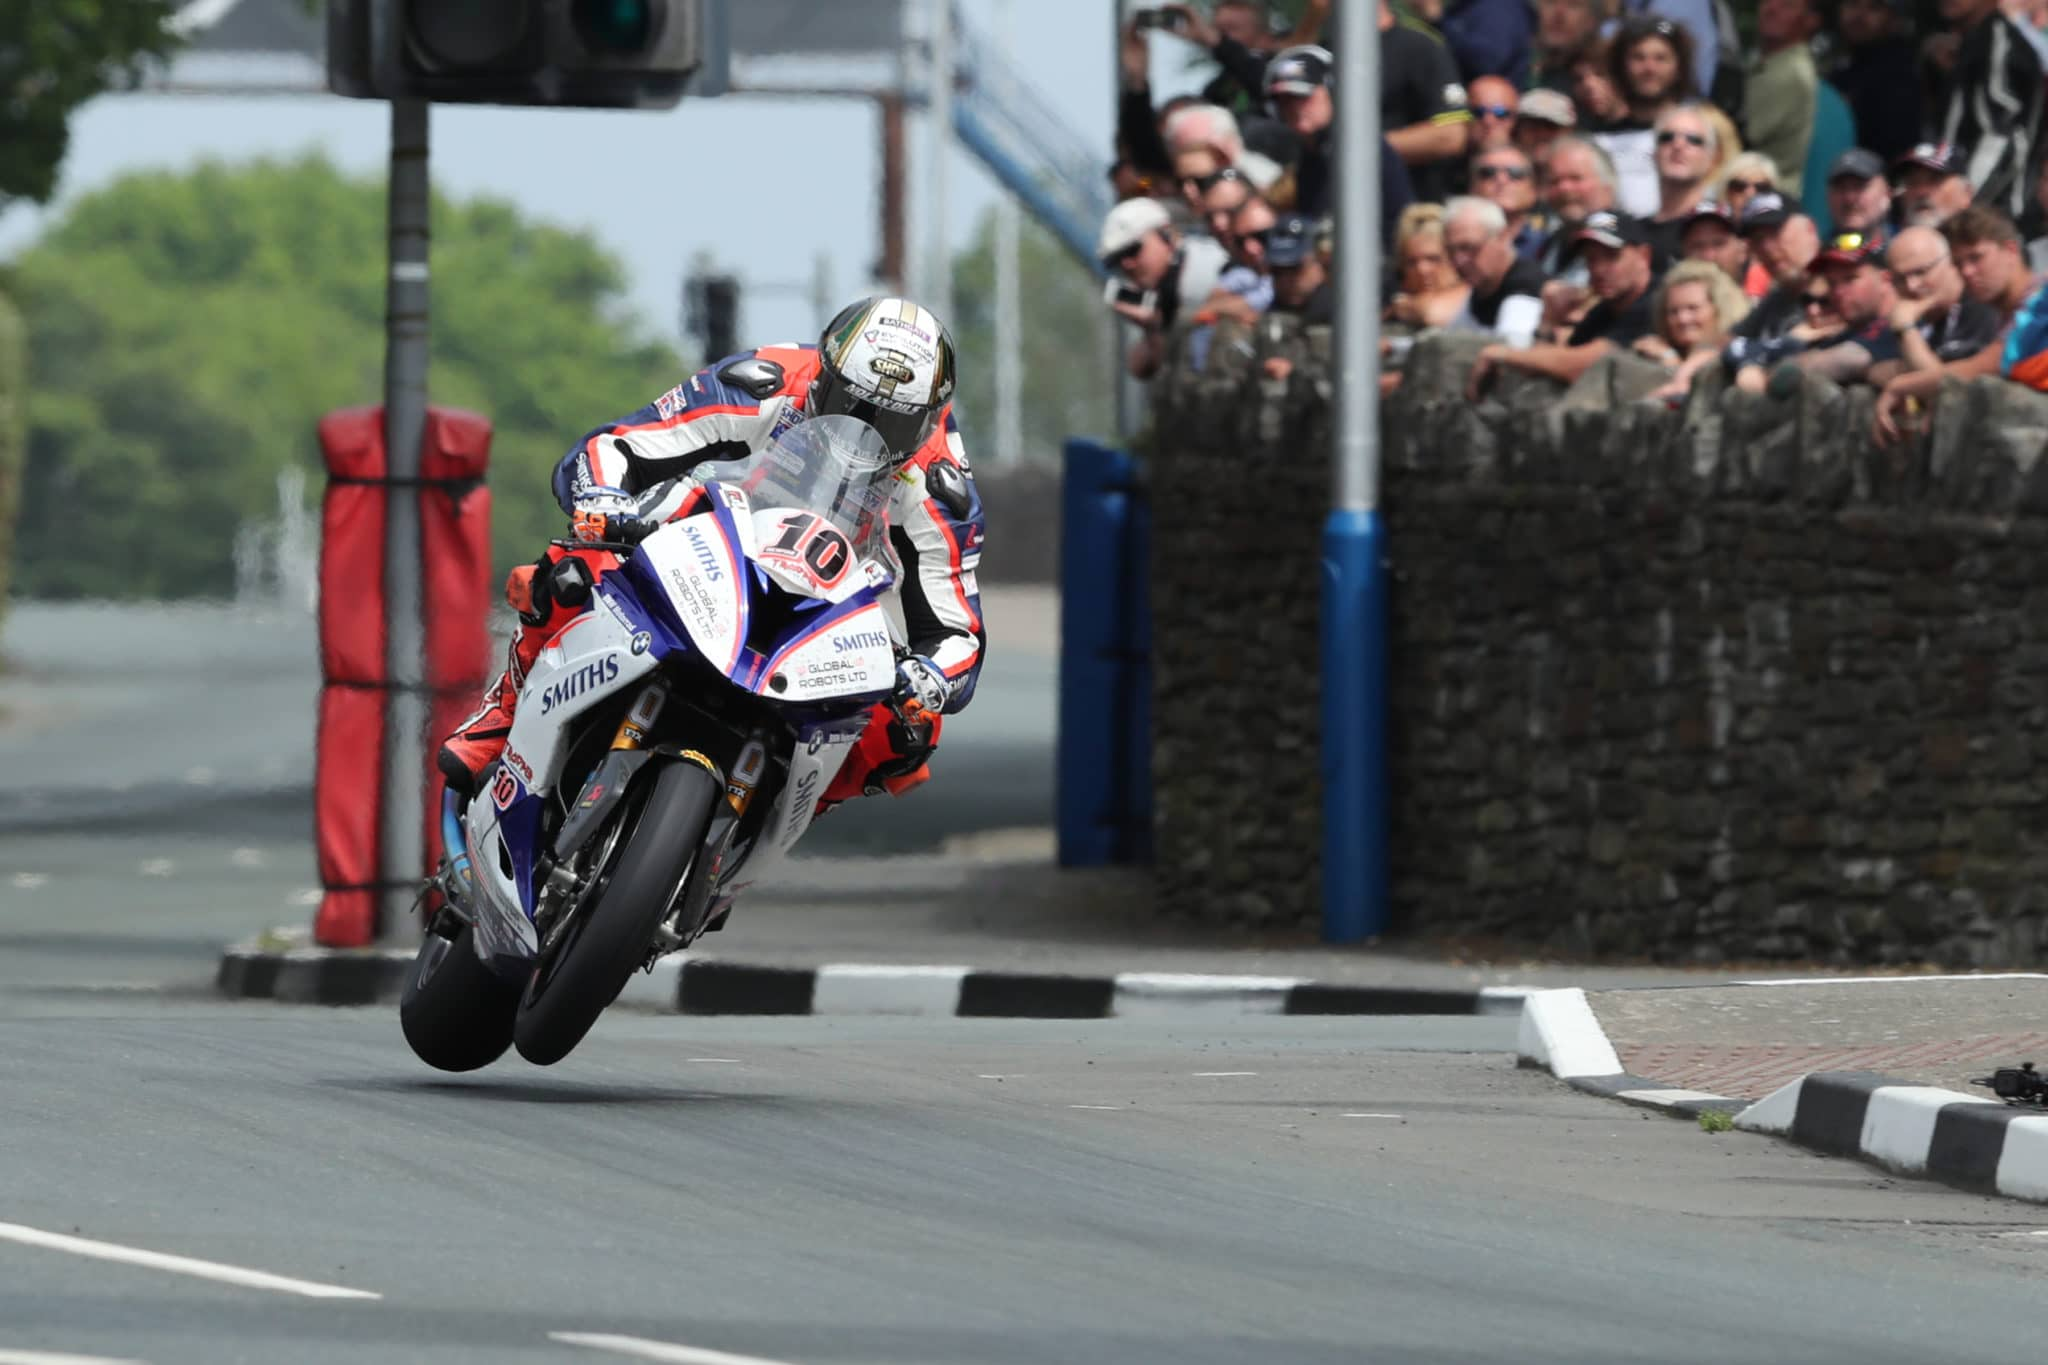 2018 Pokerstars Isle of Man TT 19